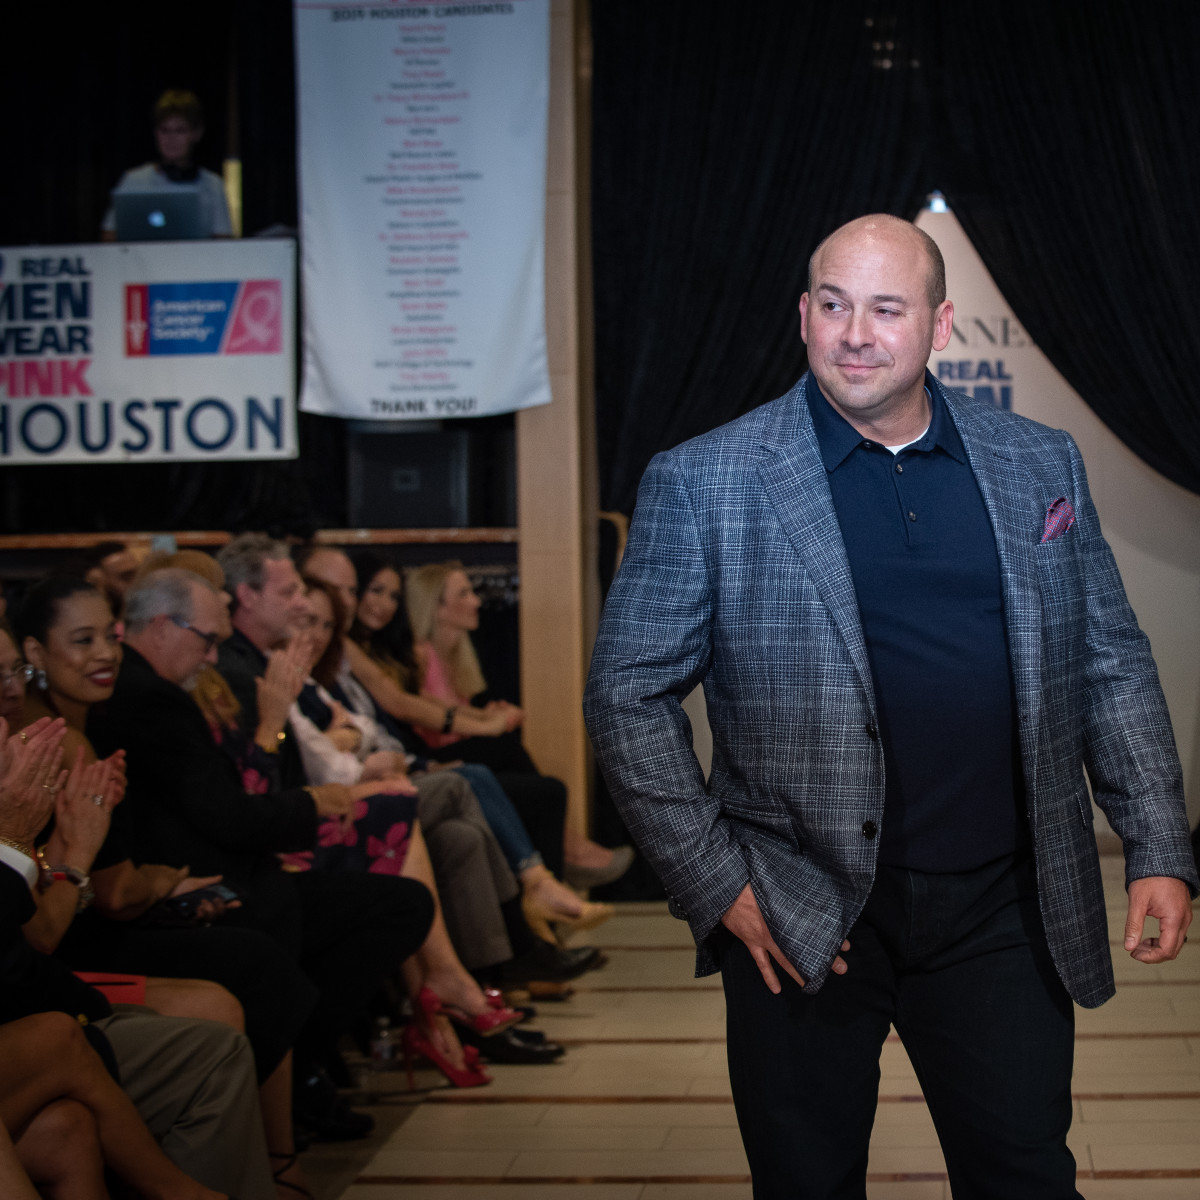 Real Men Wear Pink Houston 2019 Michael Mire